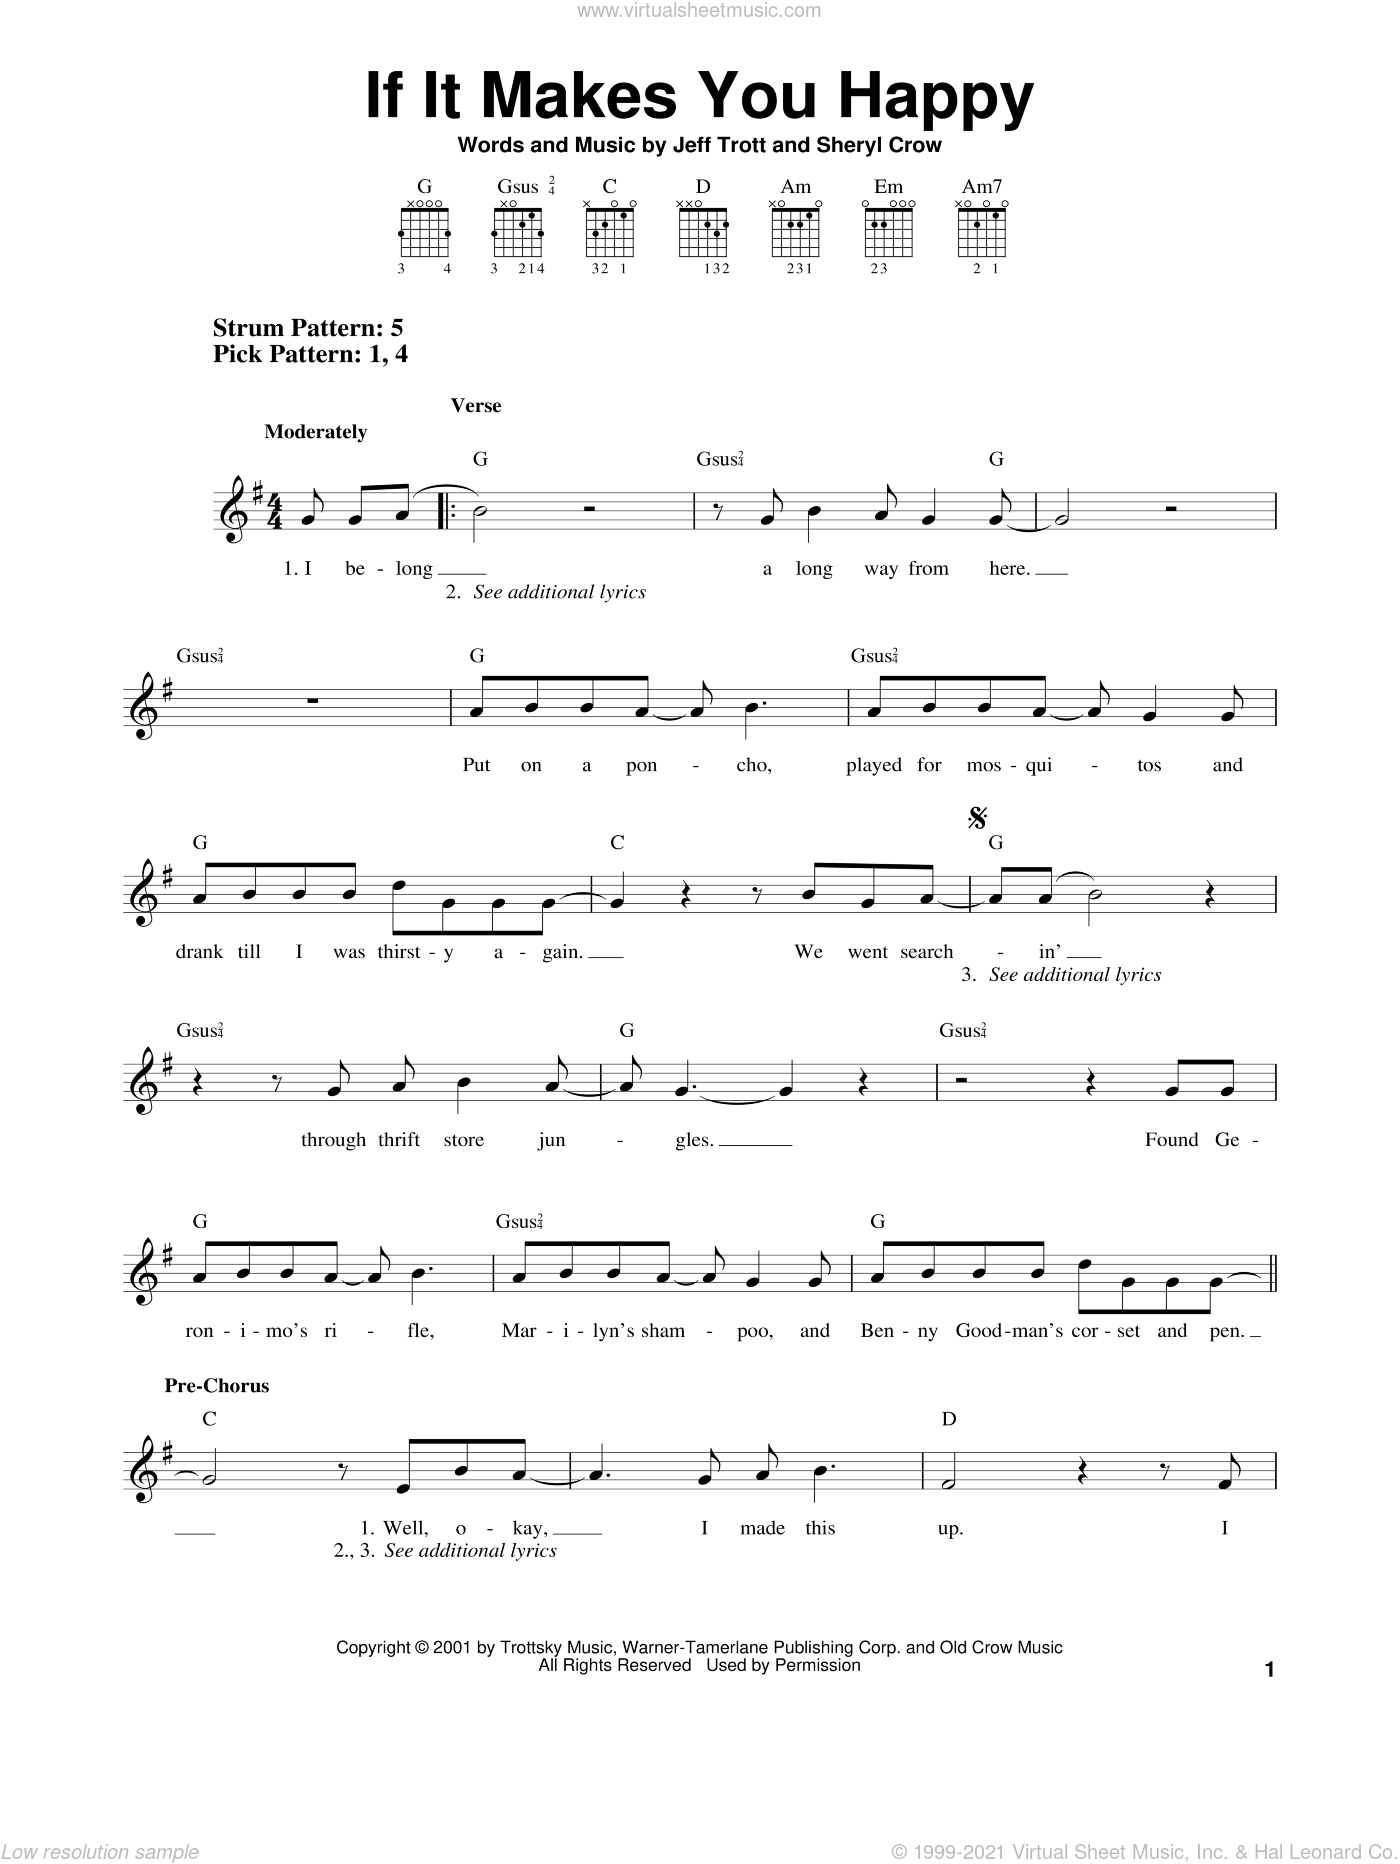 If It Makes You Happy sheet music for guitar solo (chords) by Sheryl Crow and Jeff Trott. Score Image Preview.